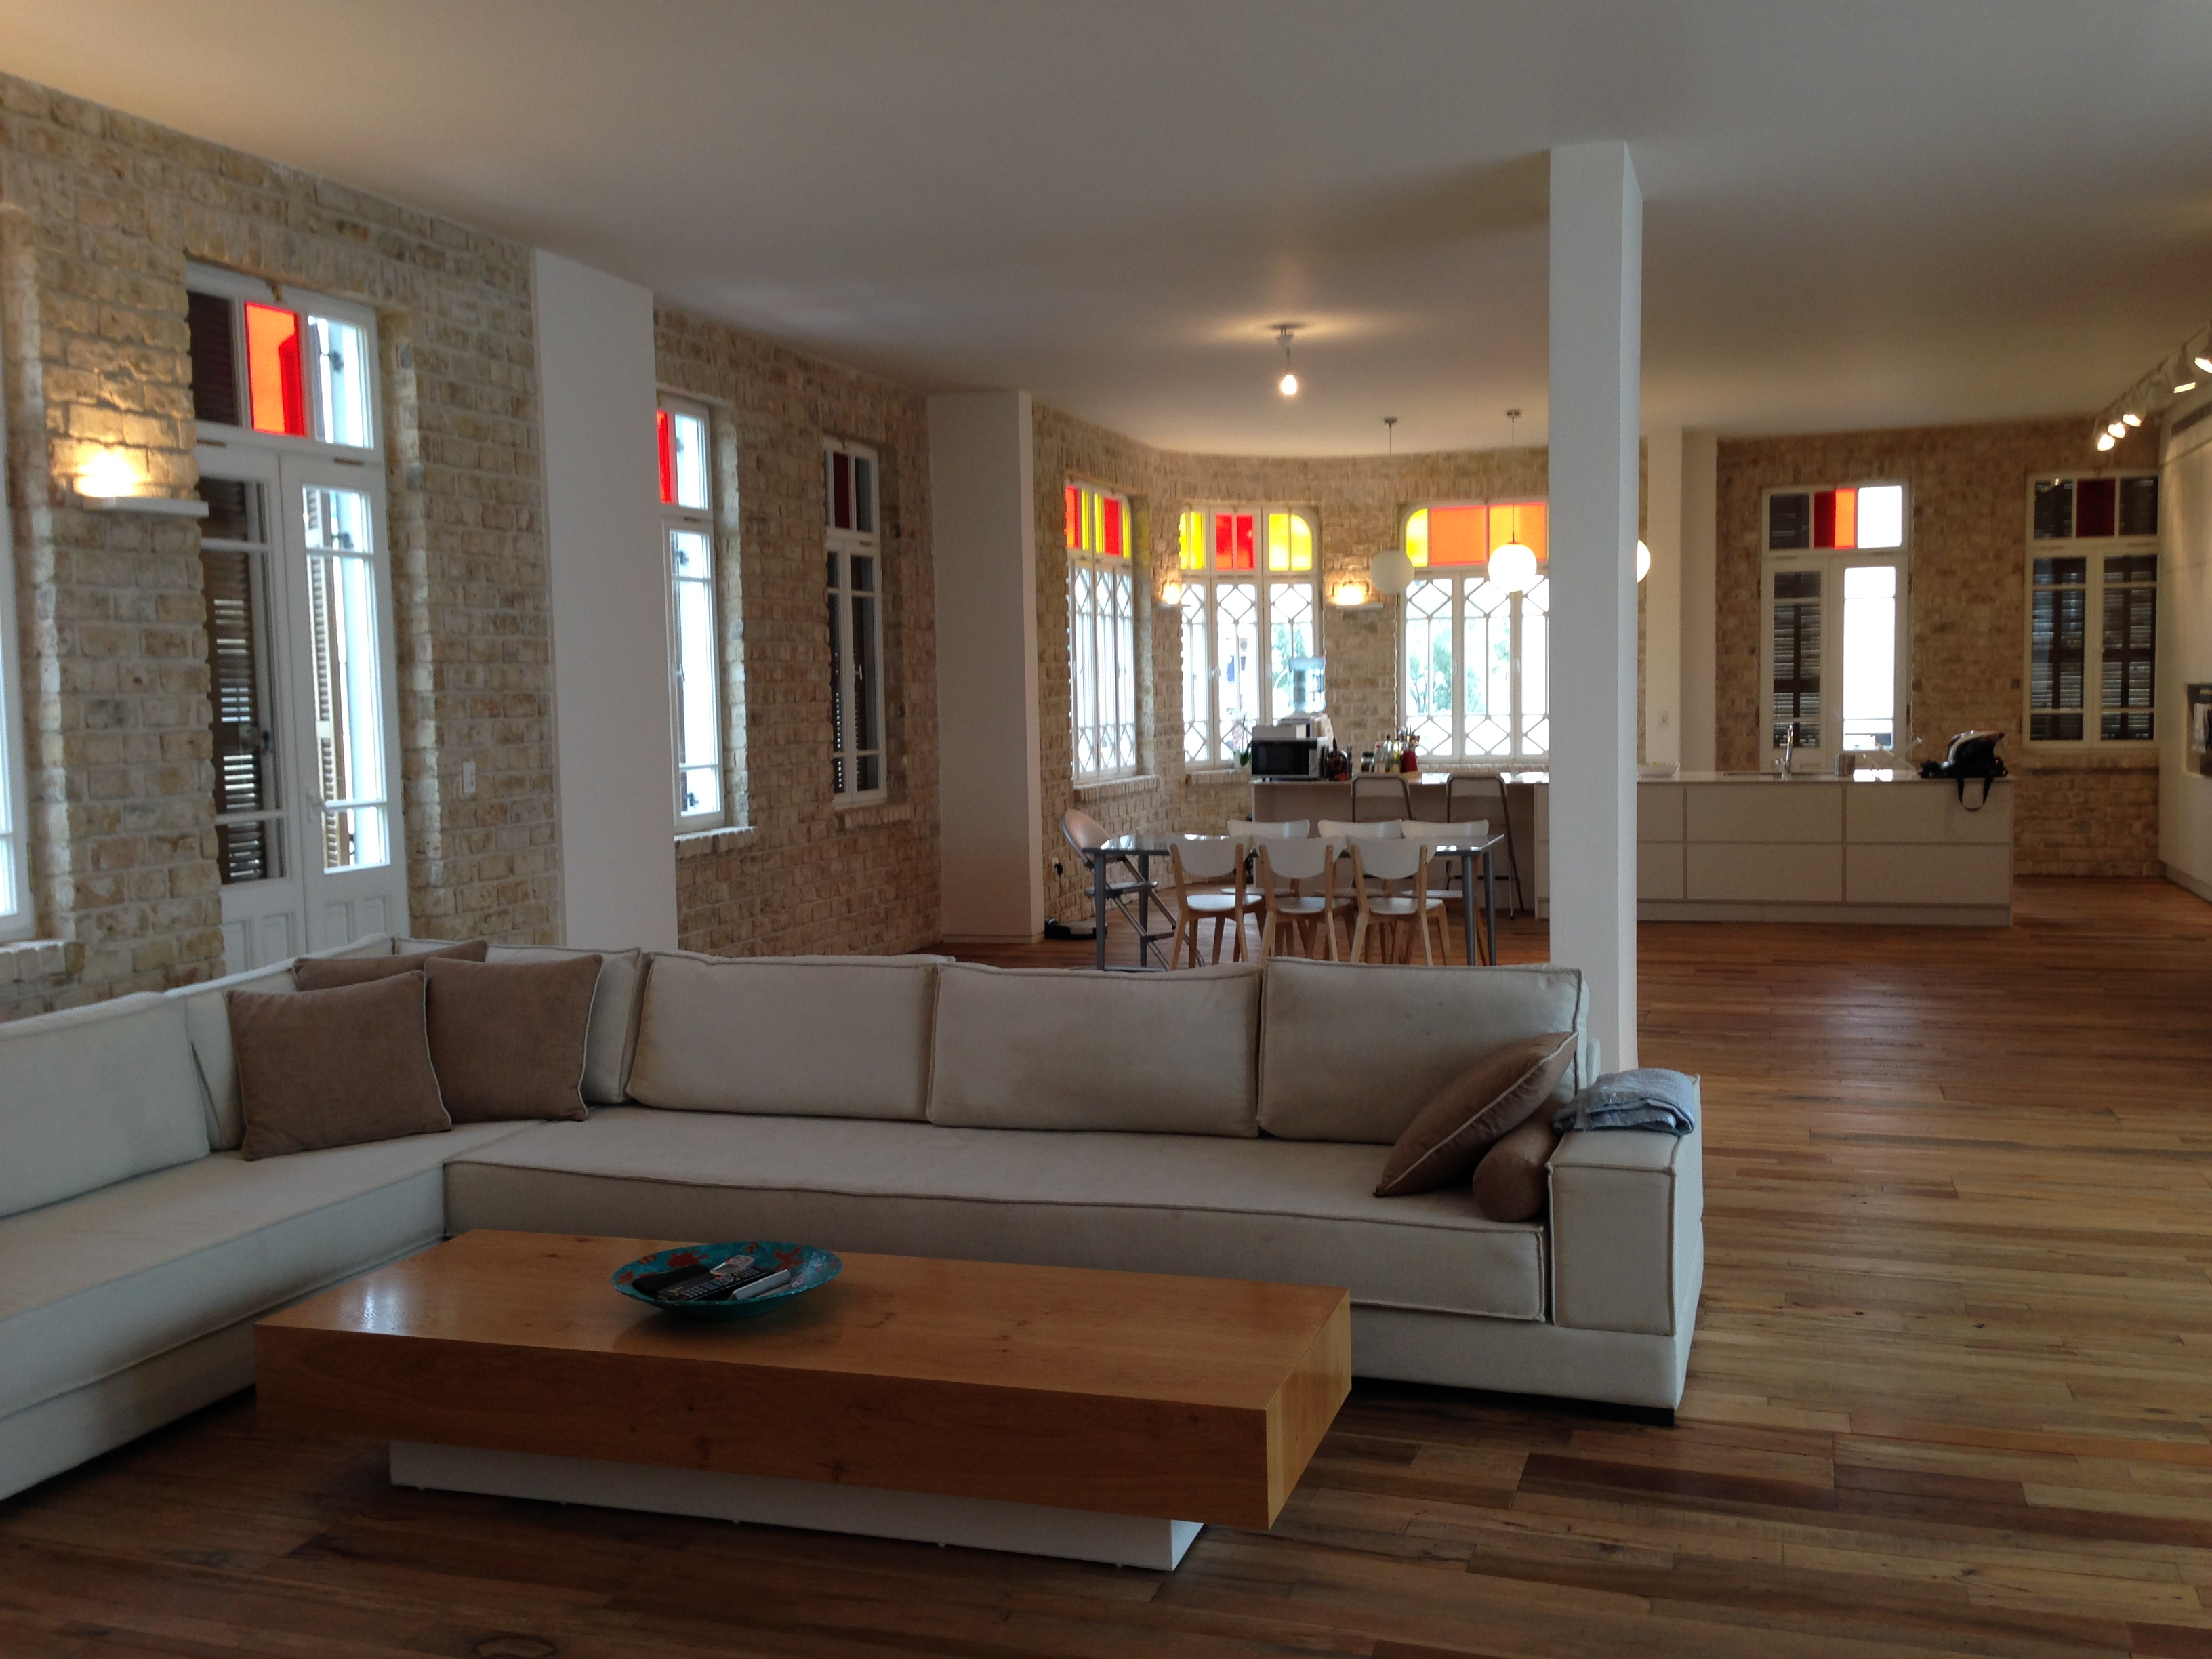 Unique 3BR Penthouse for Sale in Lev Hair Near Rothschild Blvd